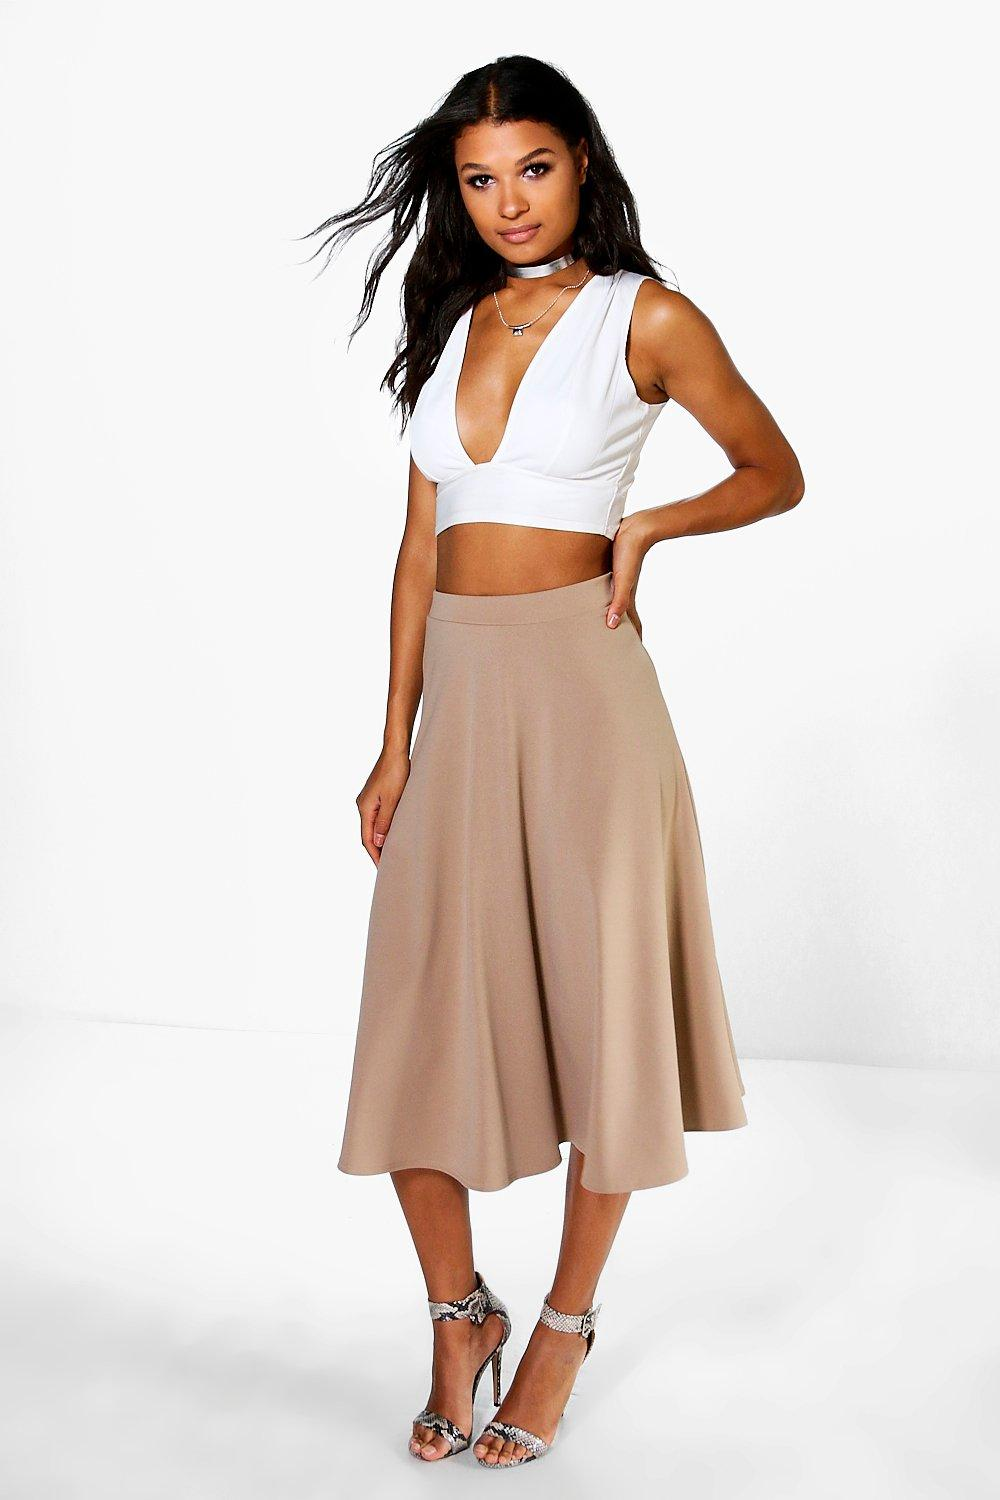 gtacashbank.ga provides circle skirt items from China top selected Skirts, Women's Clothing, Apparel suppliers at wholesale prices with worldwide delivery. You can find skirt, % Cotton circle skirt free shipping, black circle skirt and view 11 circle skirt reviews to help you choose.